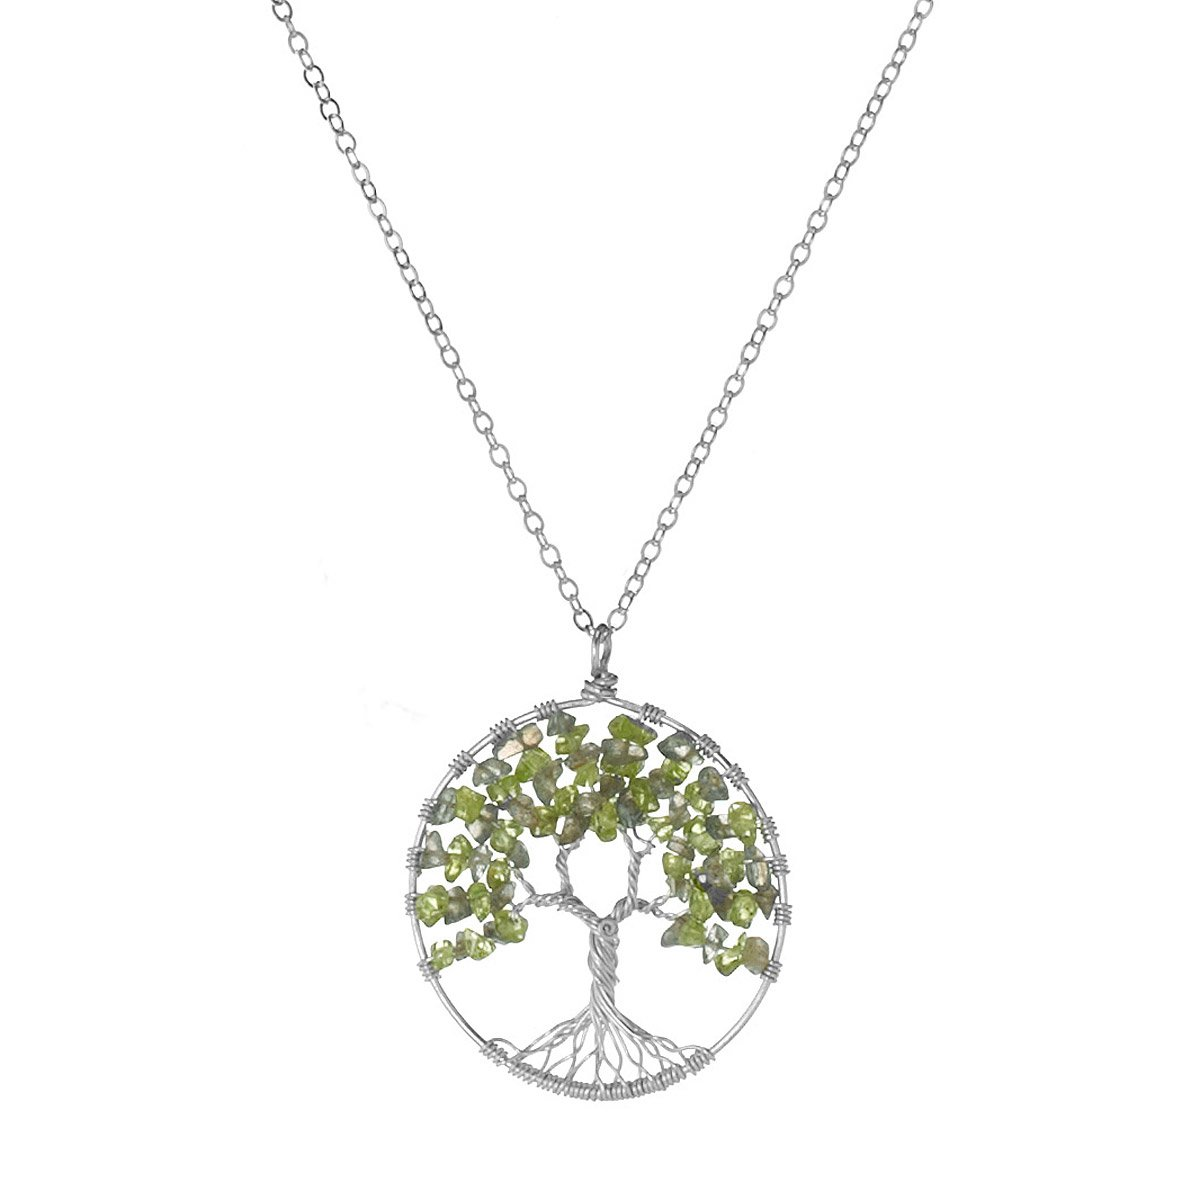 leske jewellers necklace life tree of medium s vt product